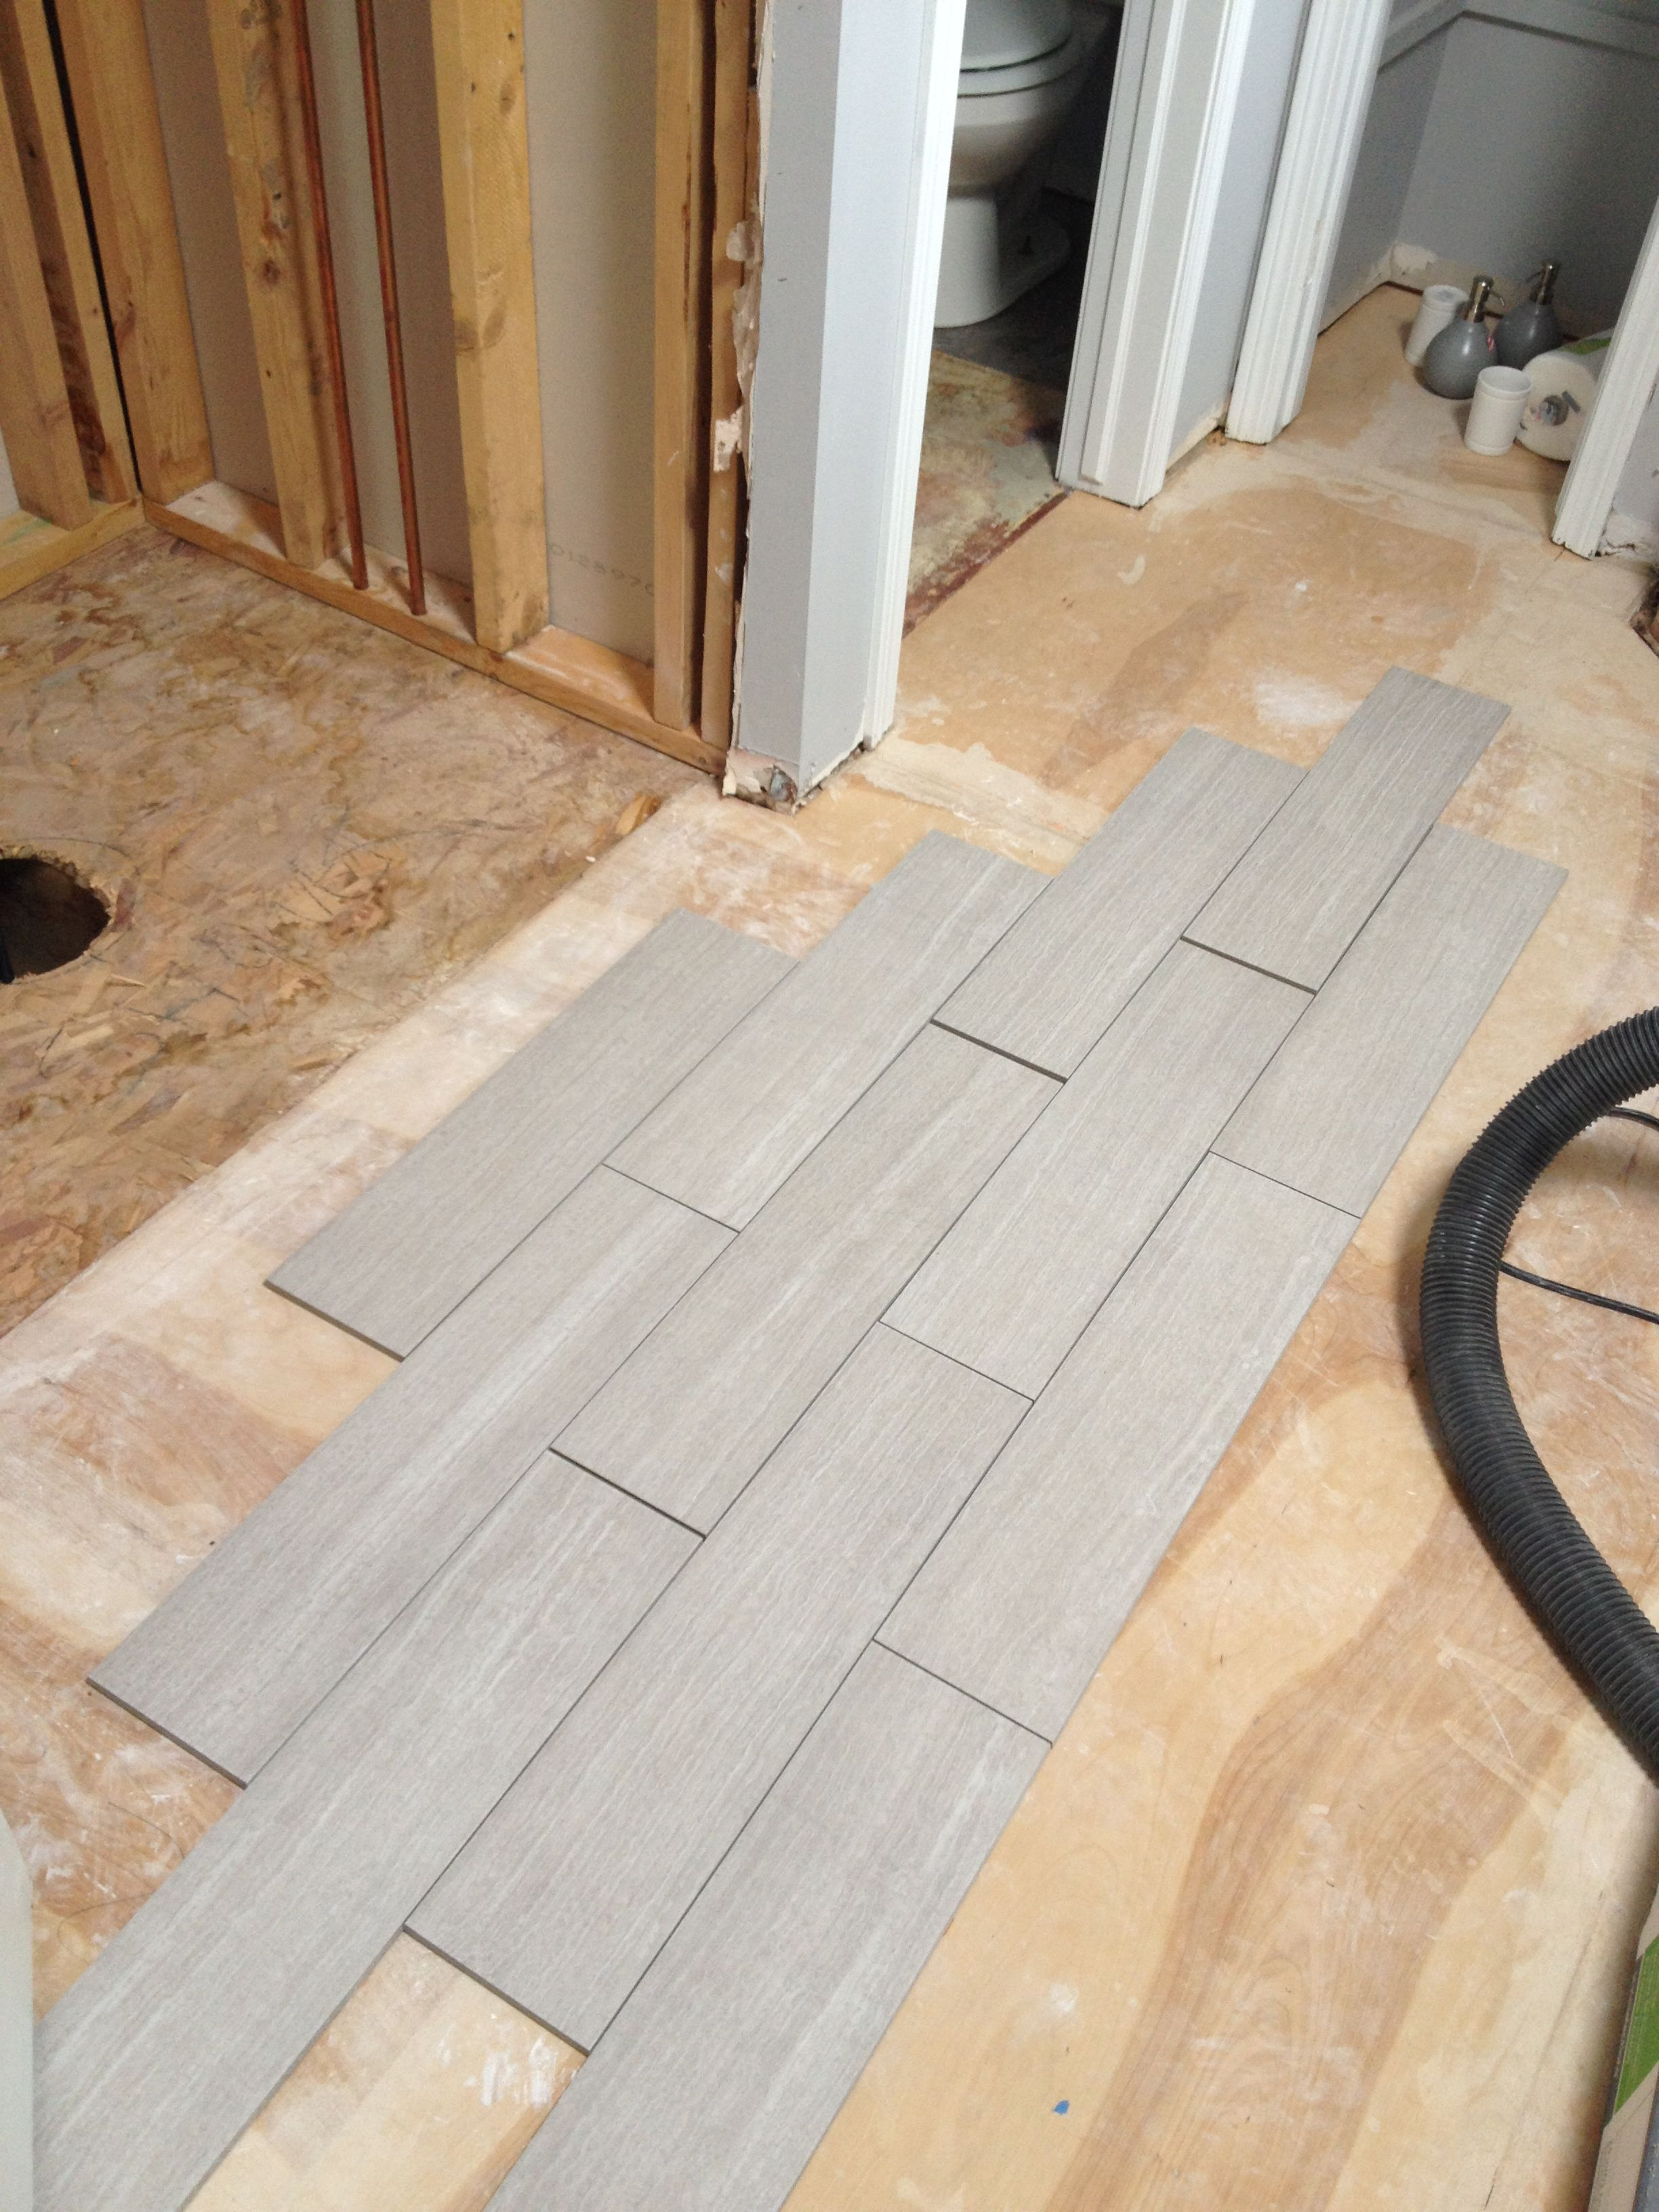 Light gray floor tile | Gray tile bathroom floor, Bathroom ...